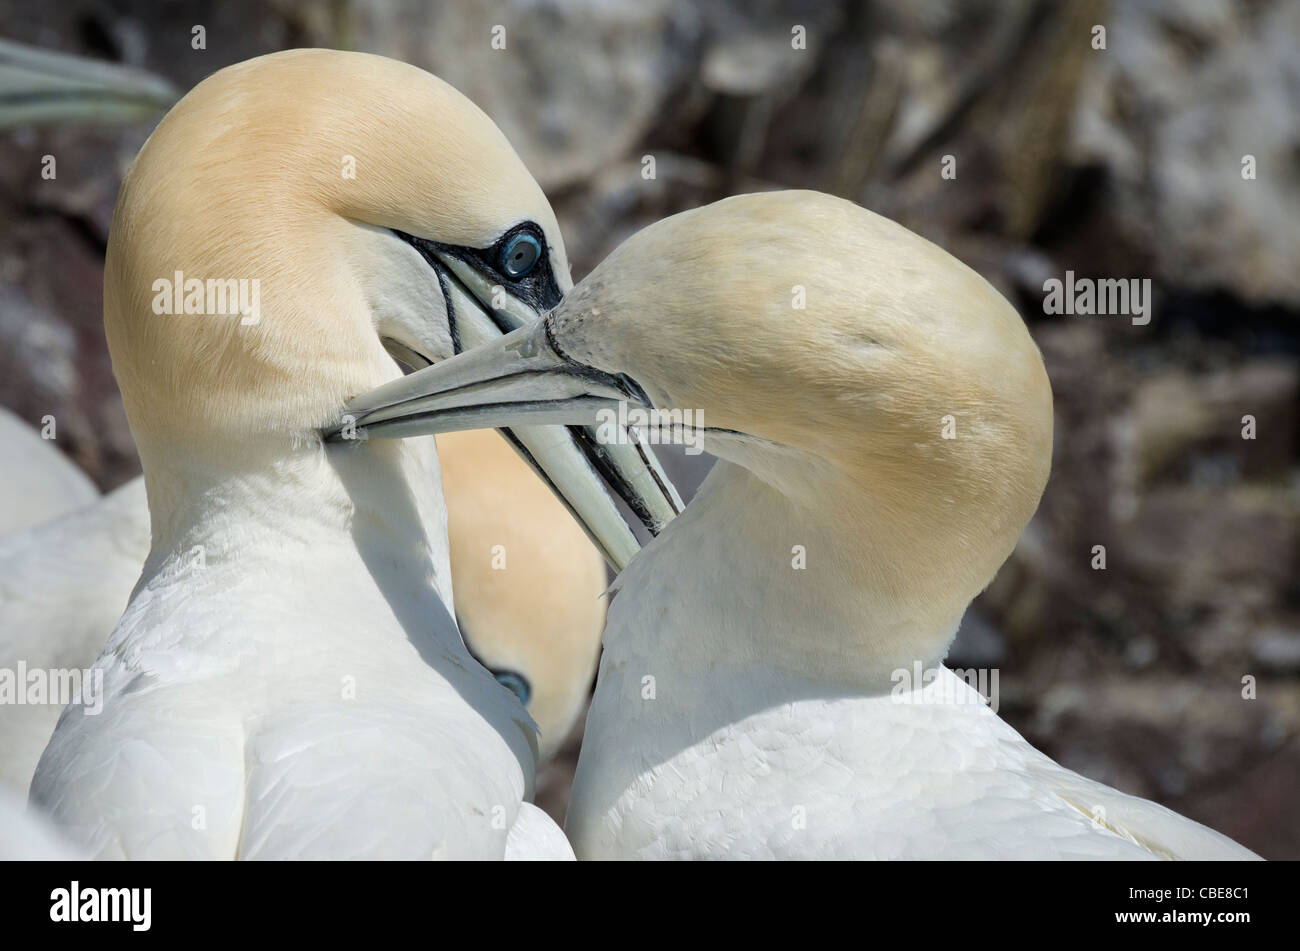 Gannets grooming - Stock Image